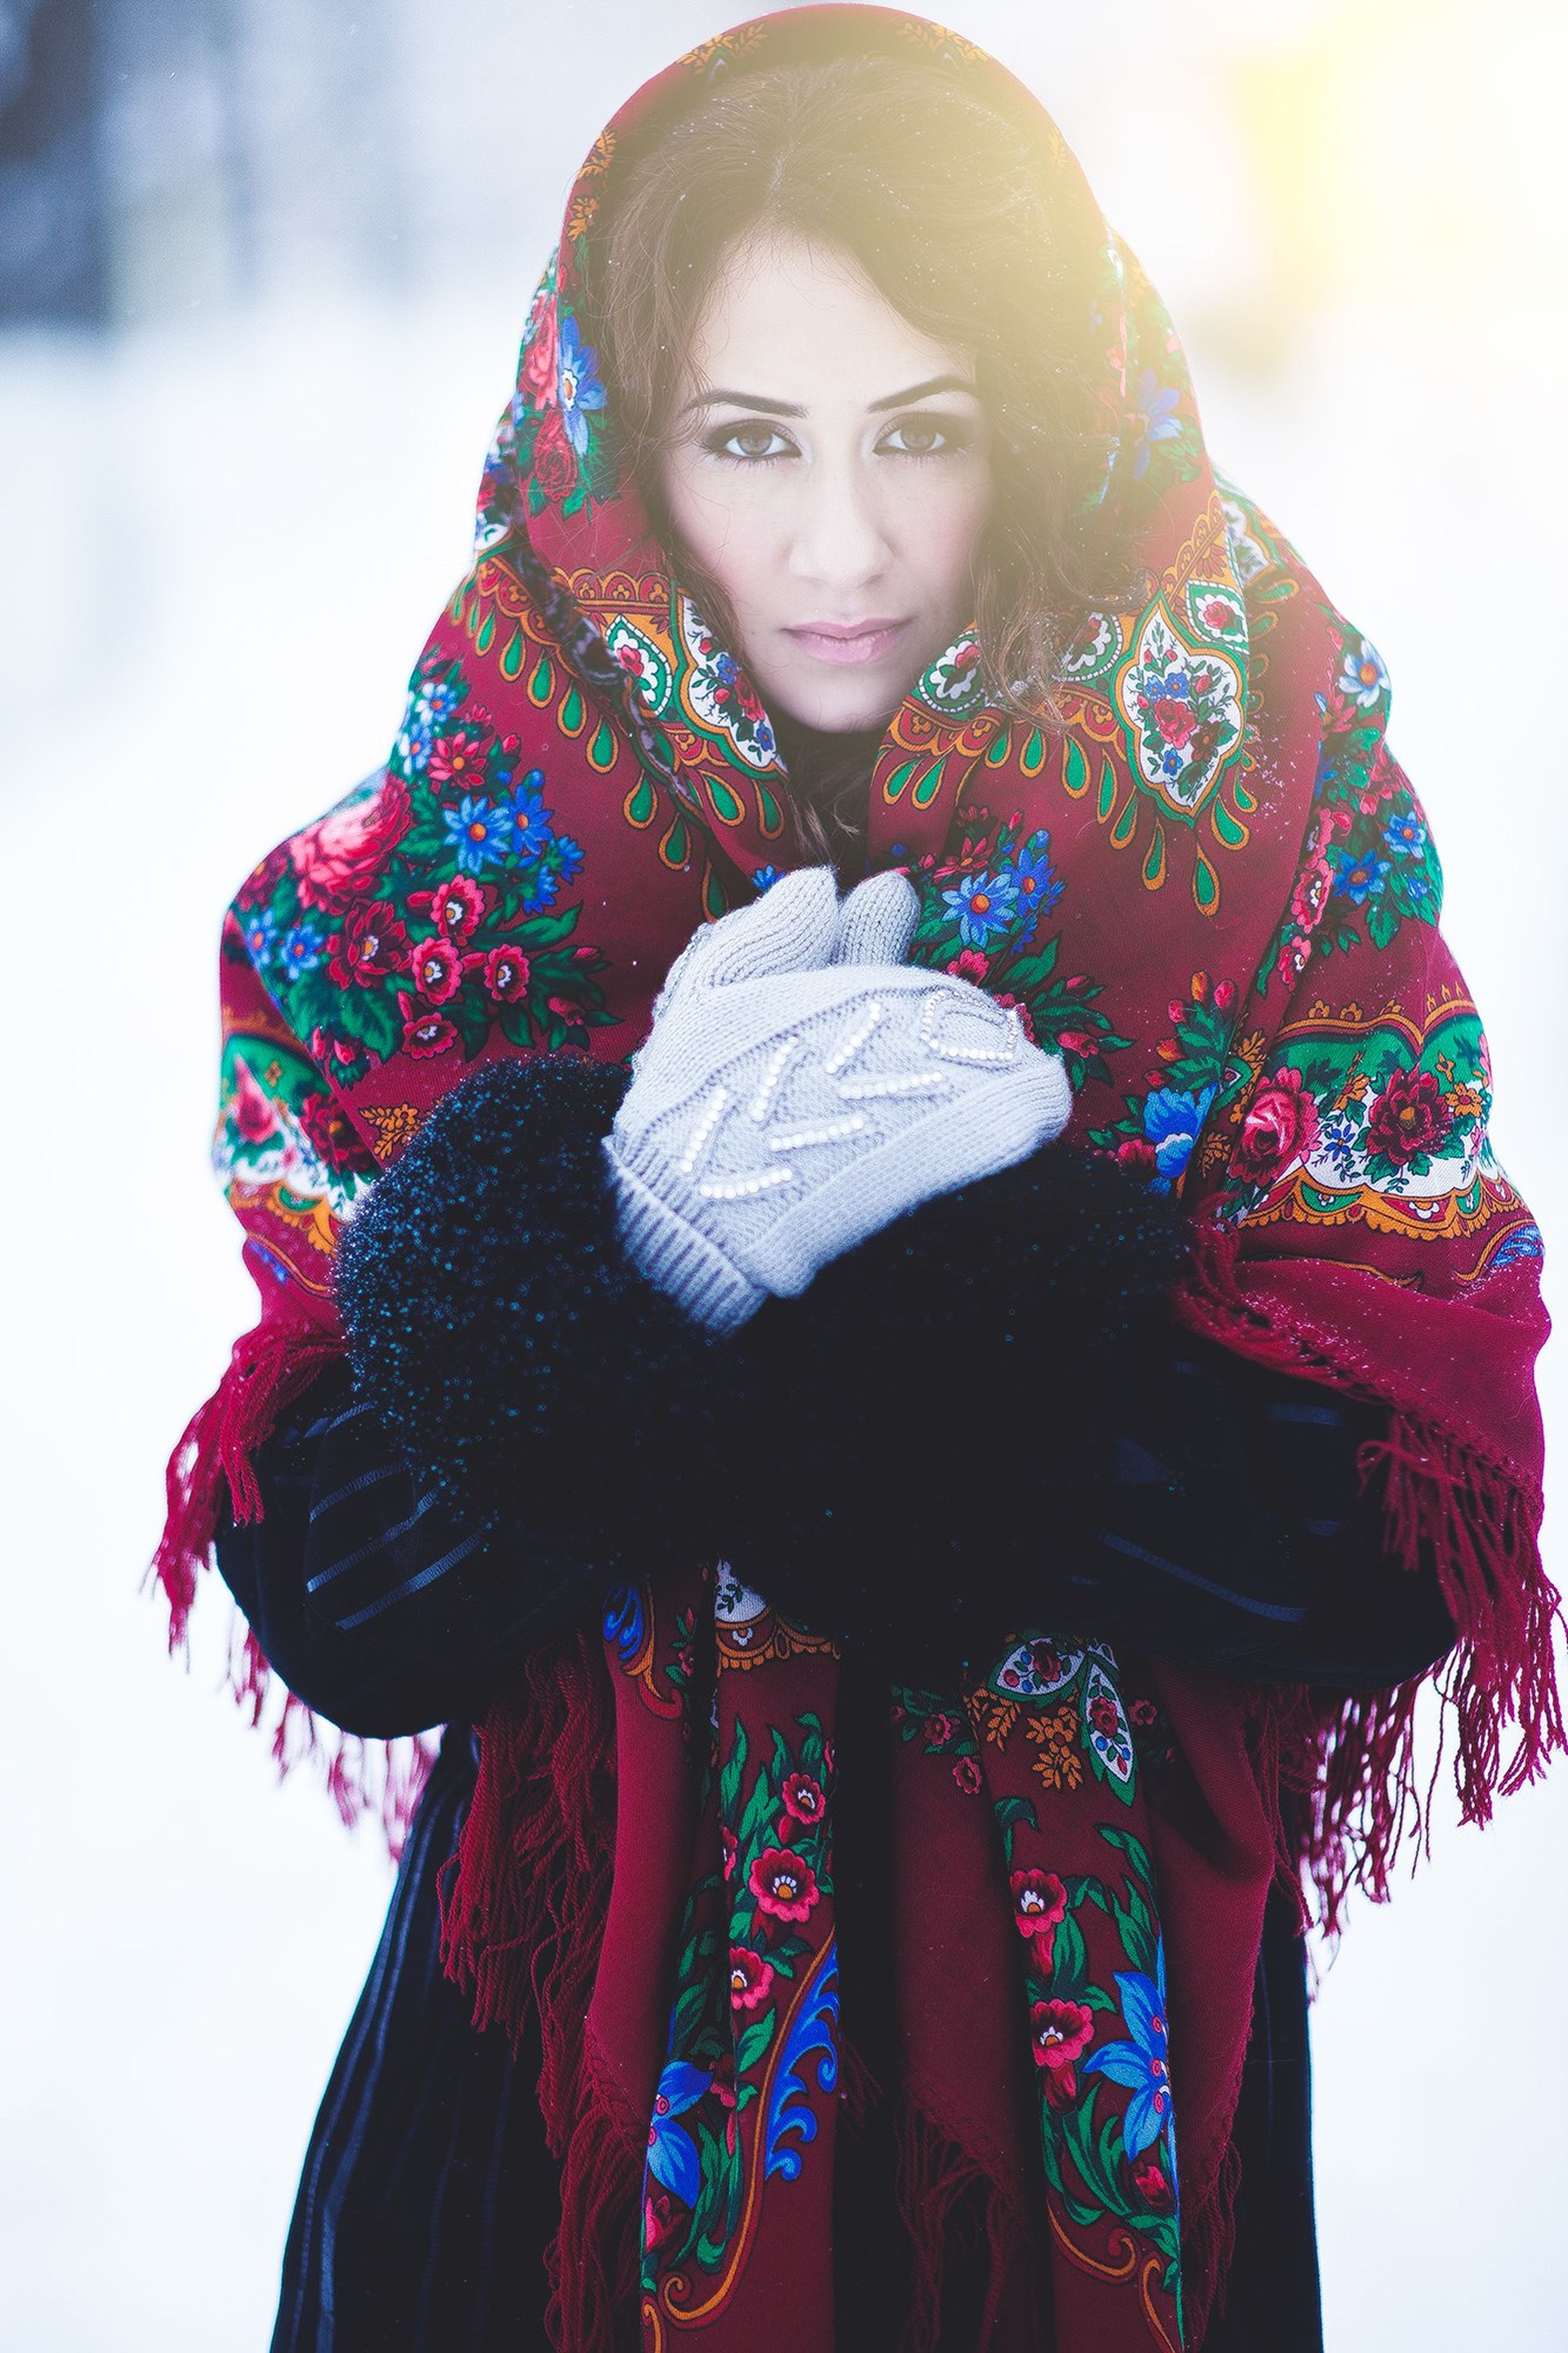 portrait, looking at camera, person, front view, lifestyles, casual clothing, leisure activity, young adult, young women, standing, smiling, warm clothing, three quarter length, happiness, winter, waist up, focus on foreground, snow